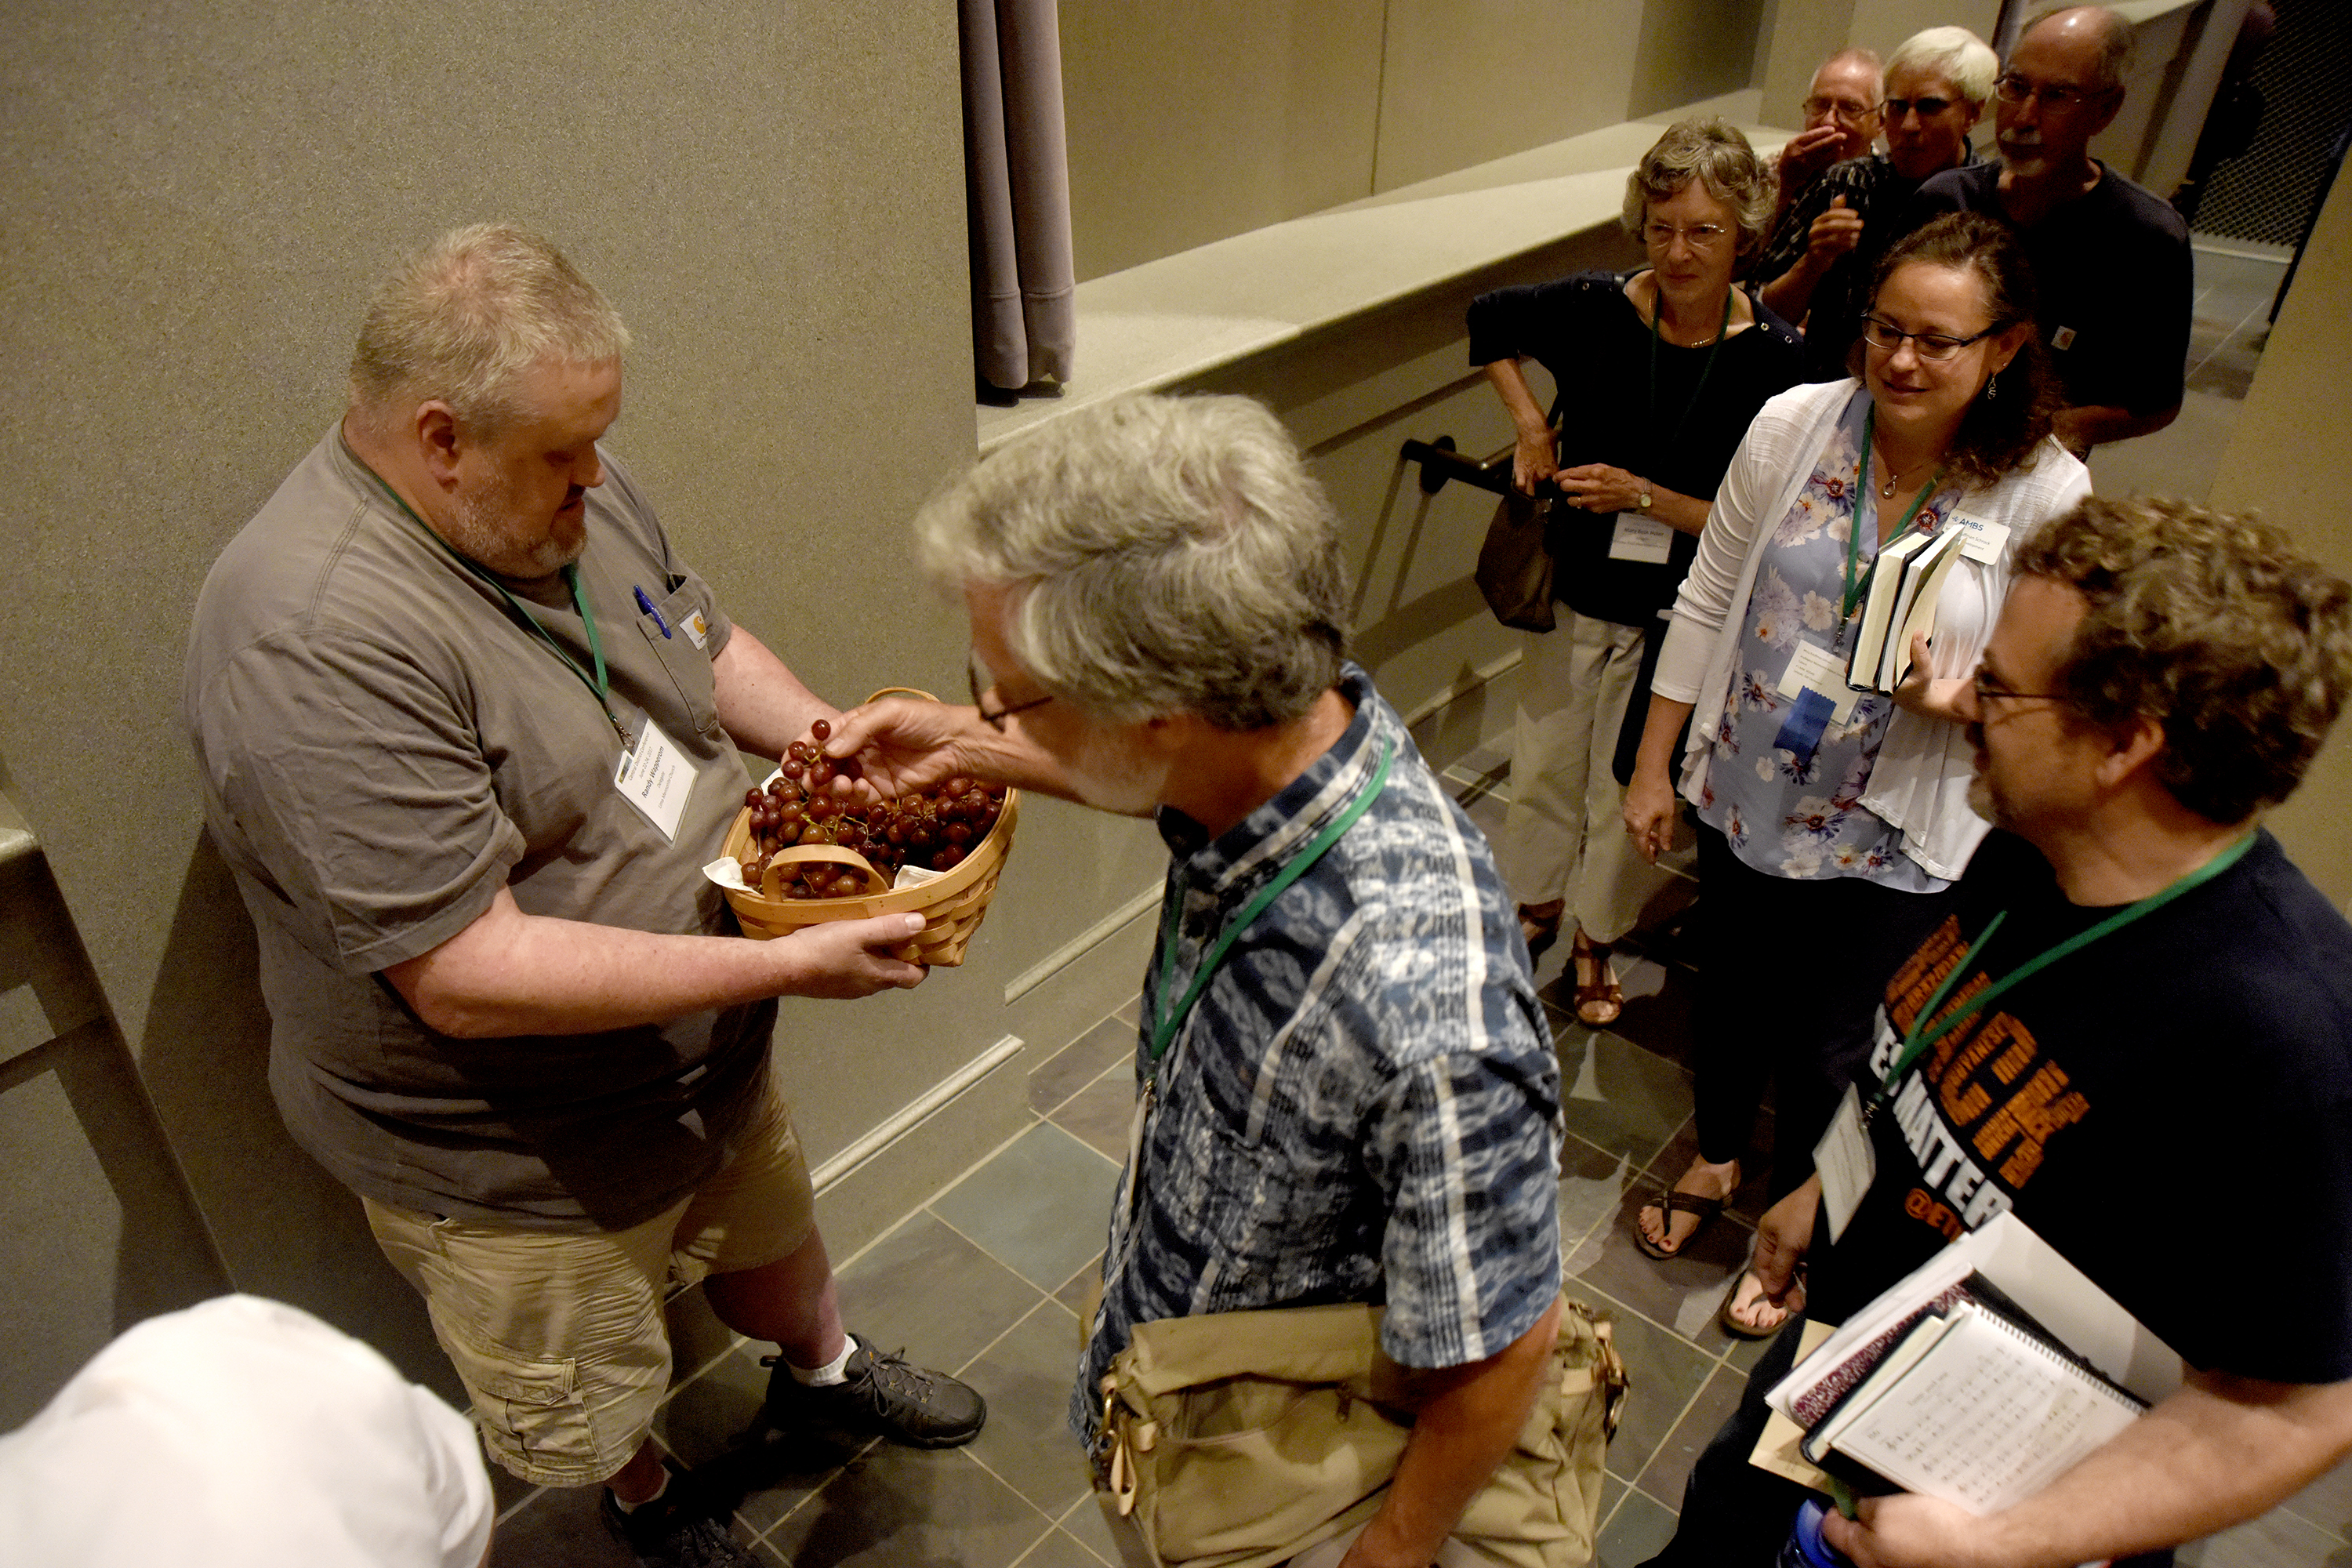 Randy Wapperom (left) serves Phil Hart grapes during communion at Yoder Recital Hall during the Central District Conference, Friday, June 23, 2017, at Bluffton University, Bluffton, OH. Wapperom attends Lima Mennonite Church and Mason attends Columbus Mennonite Church. Photograph by J. Tyler Klassen